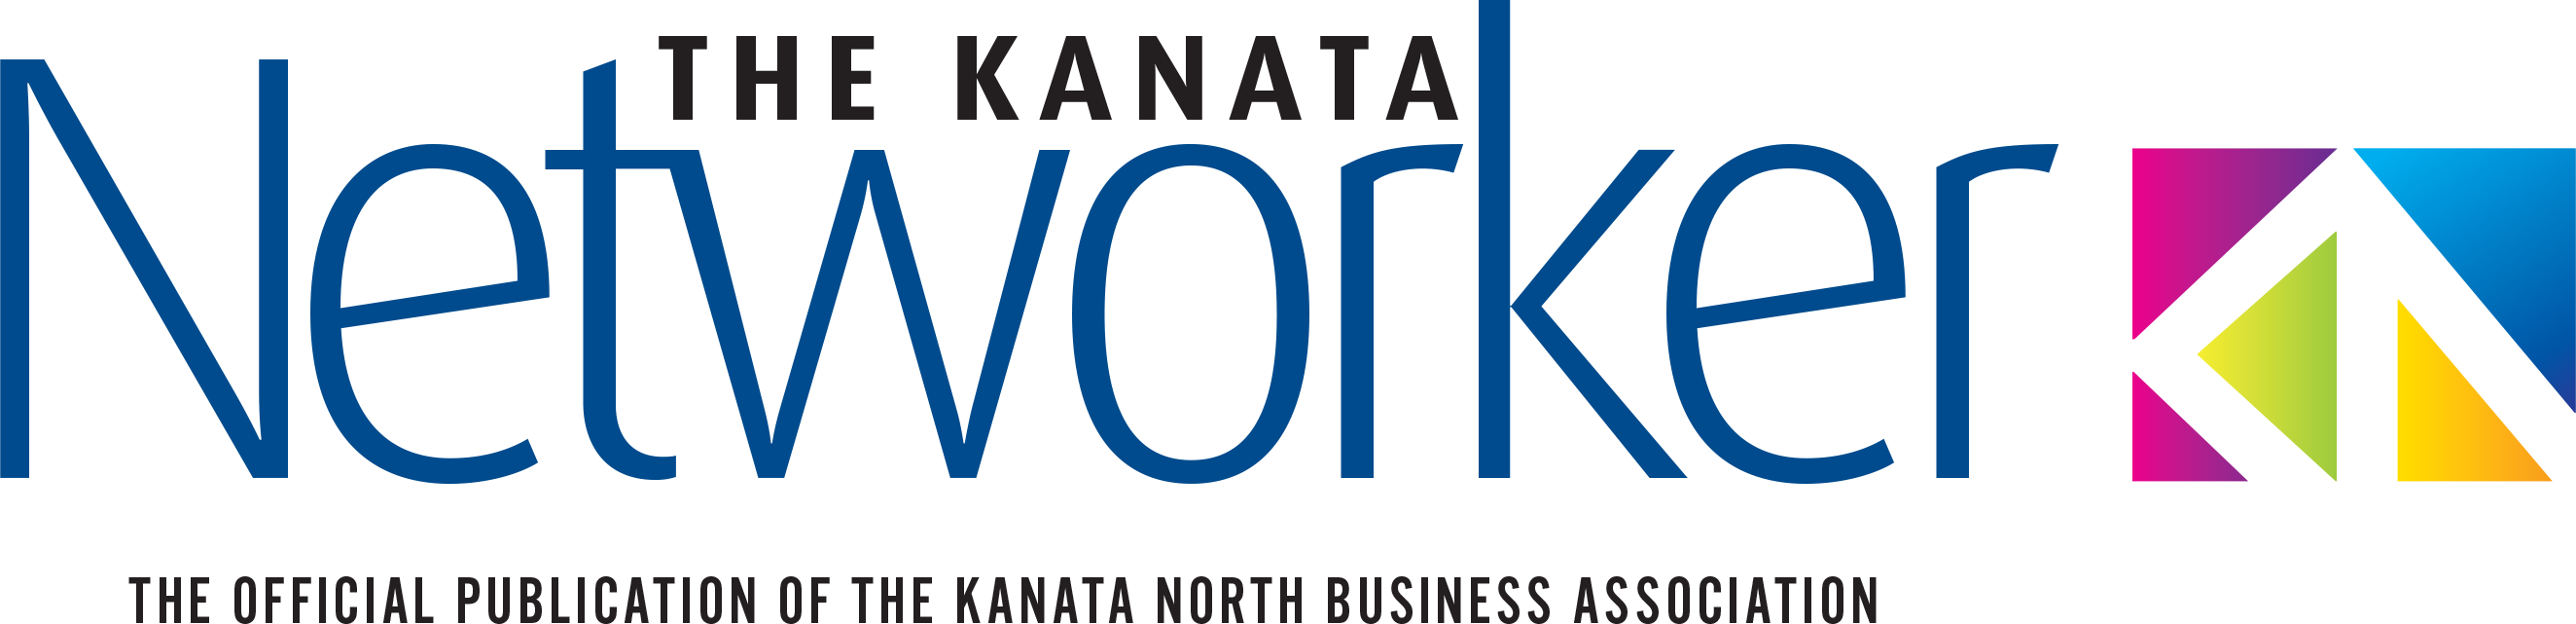 The Kanata Networker